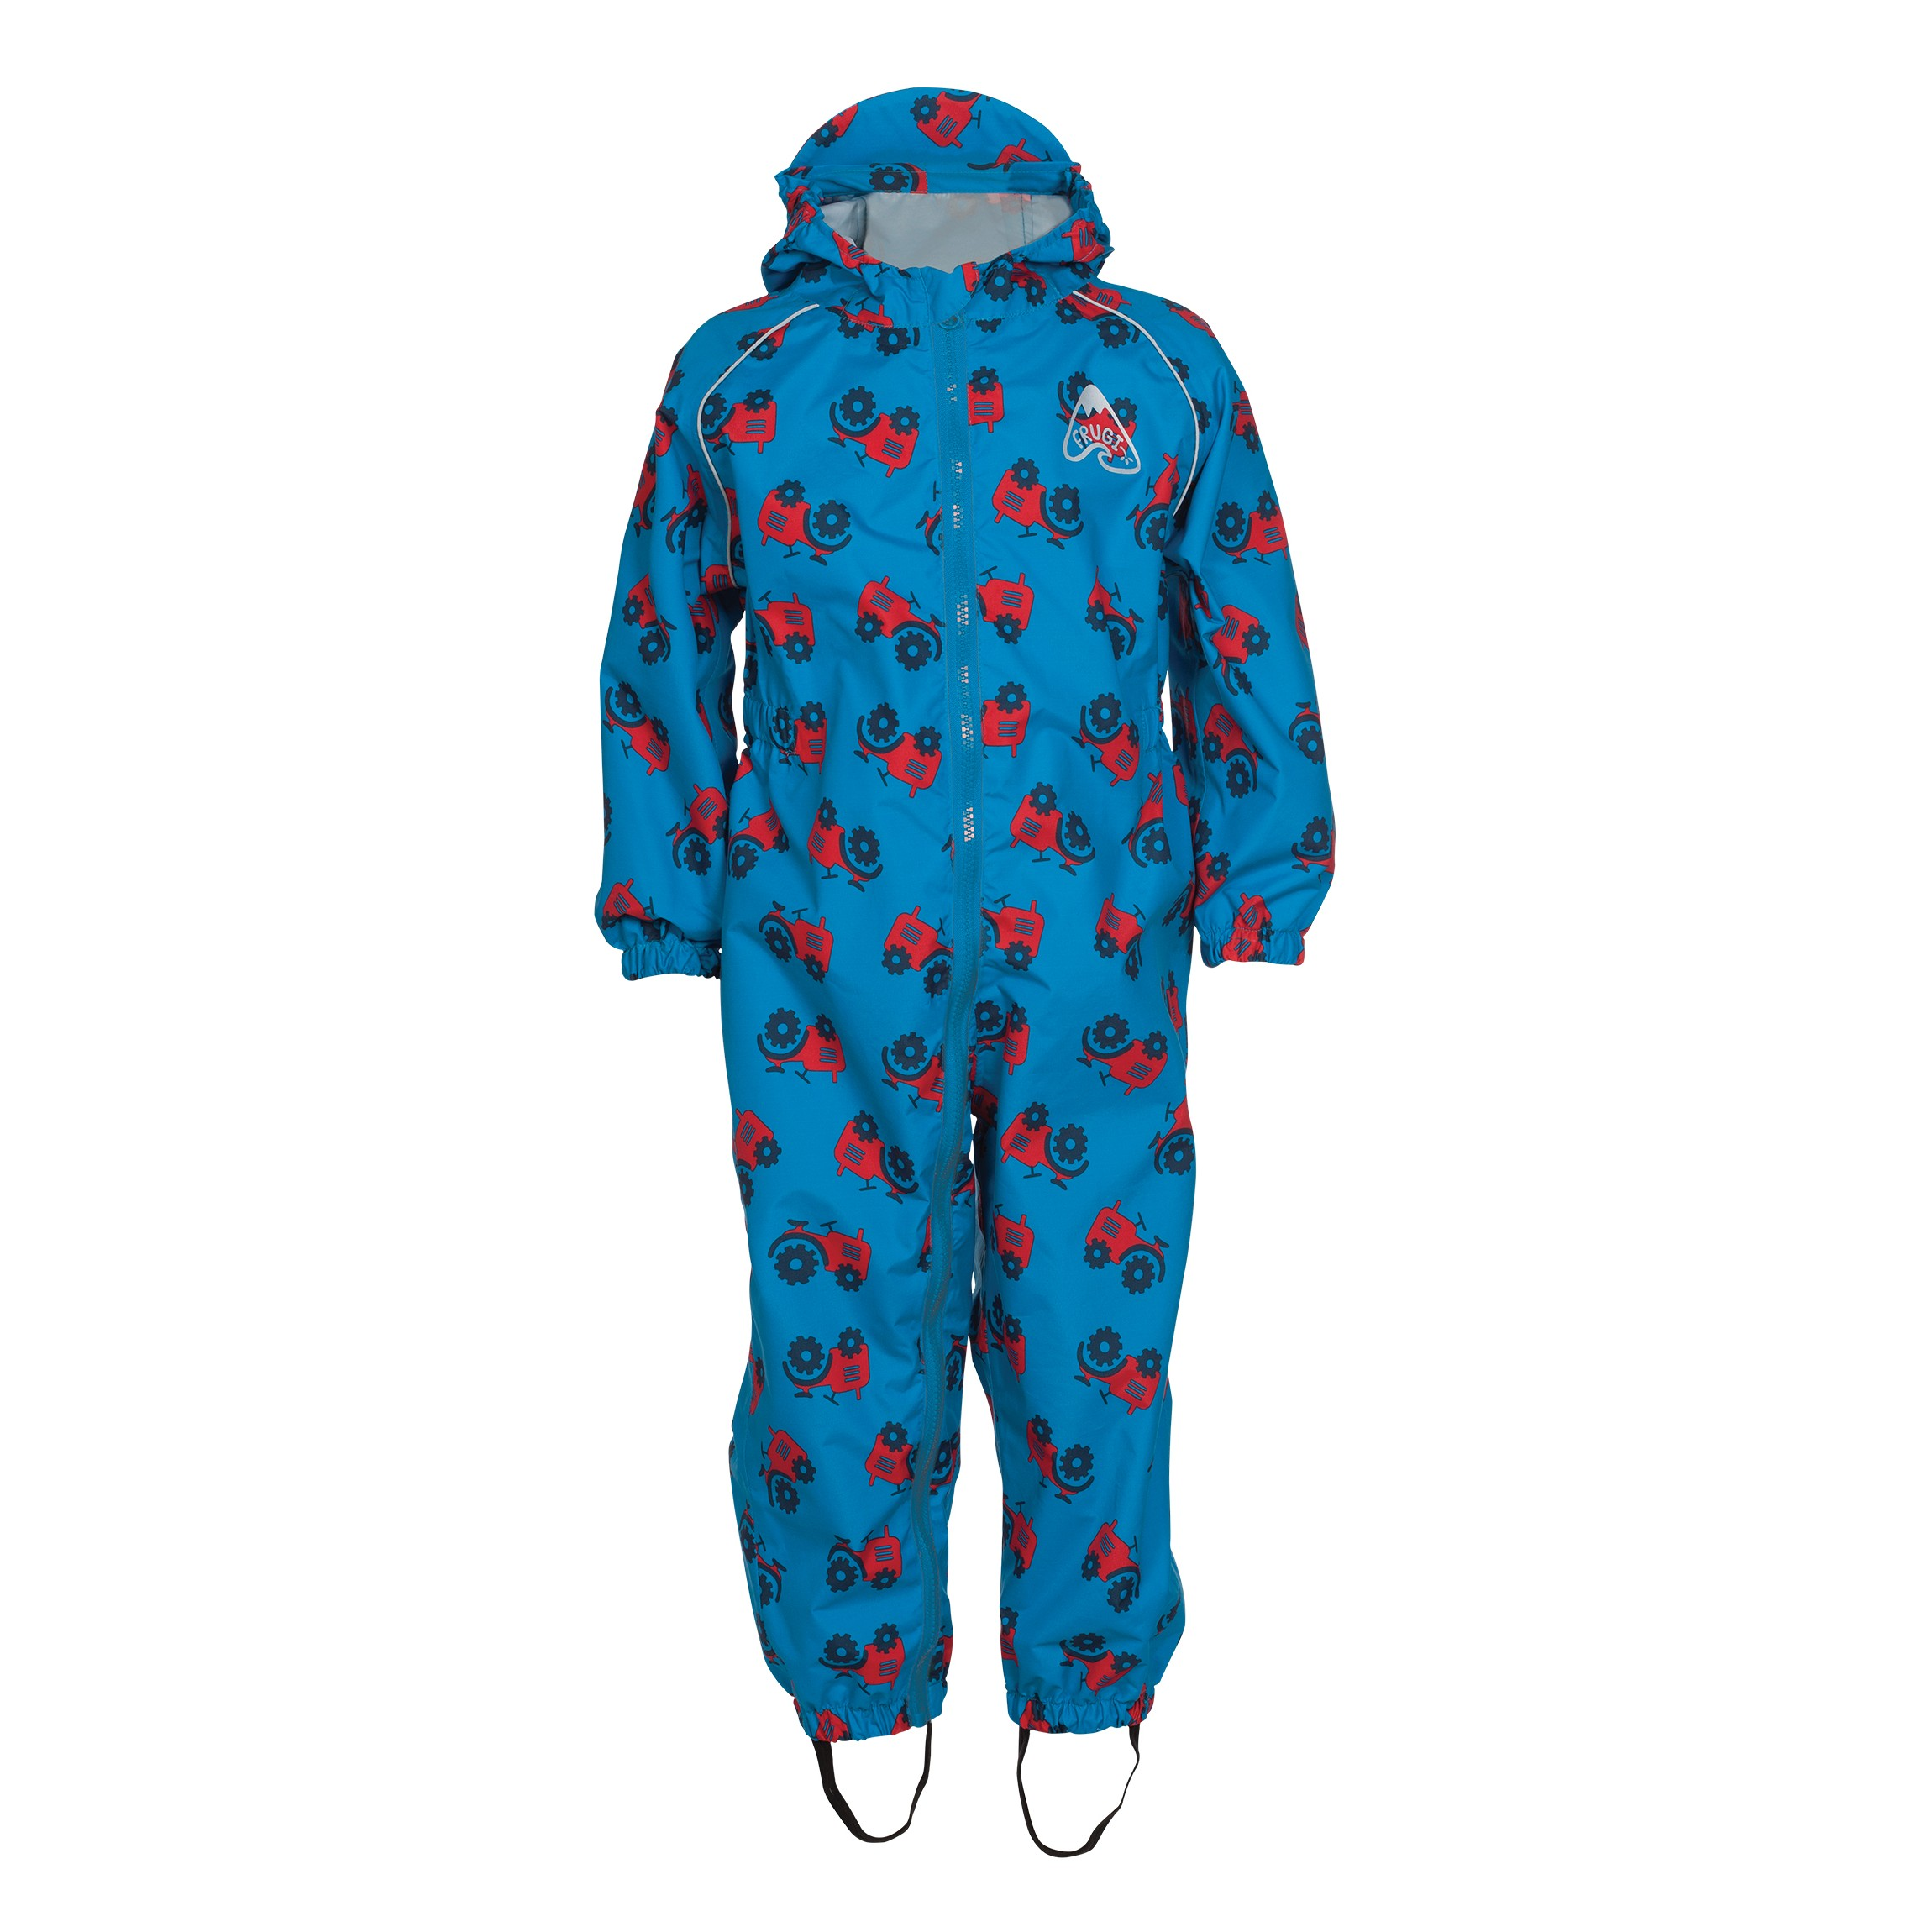 Frugi Puddle Buster Suit - Rainy Day Tractor